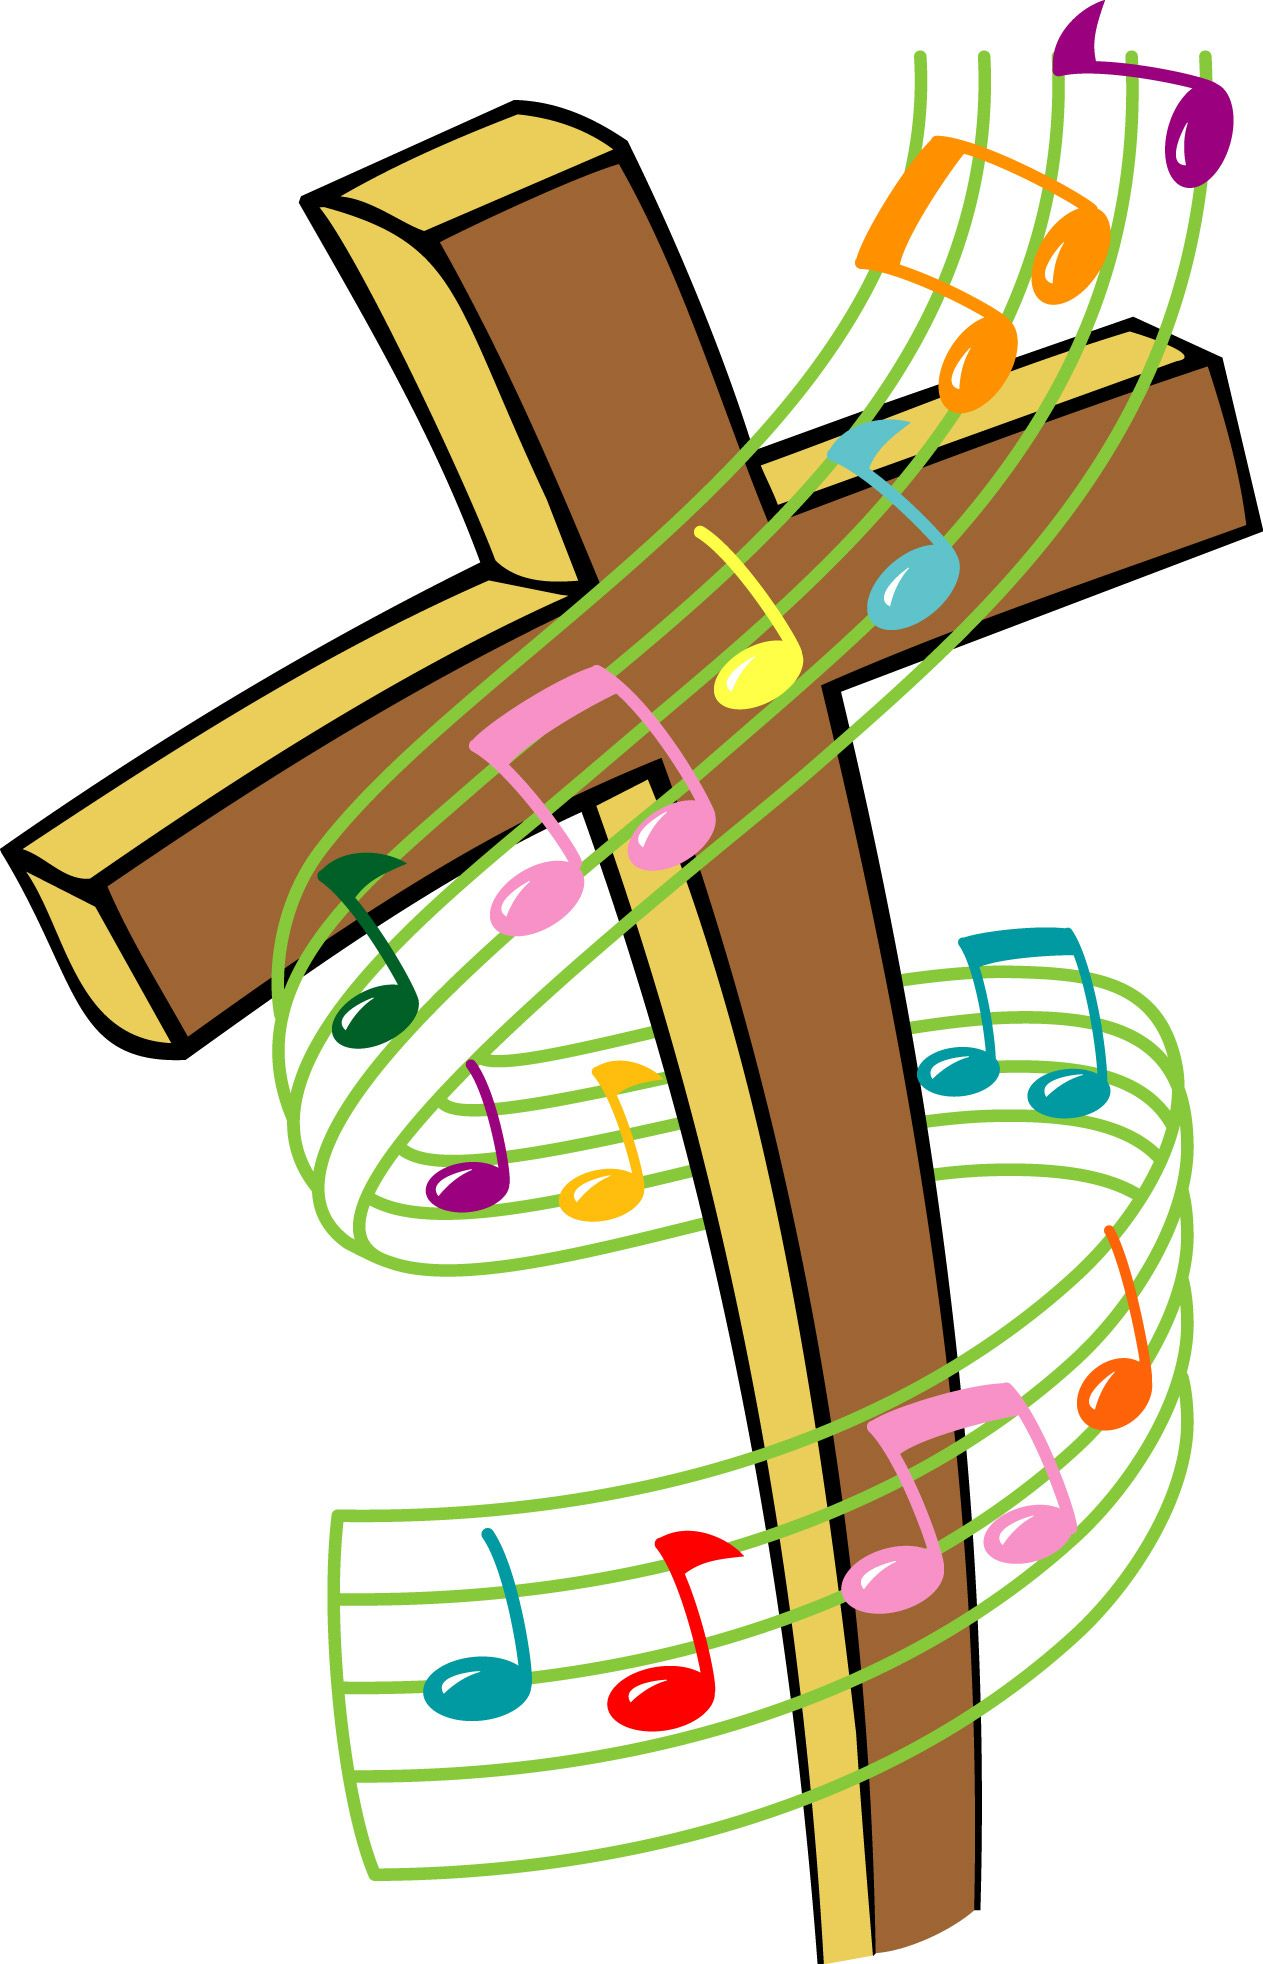 Choir clipart music ministry. Clip art stay tuned